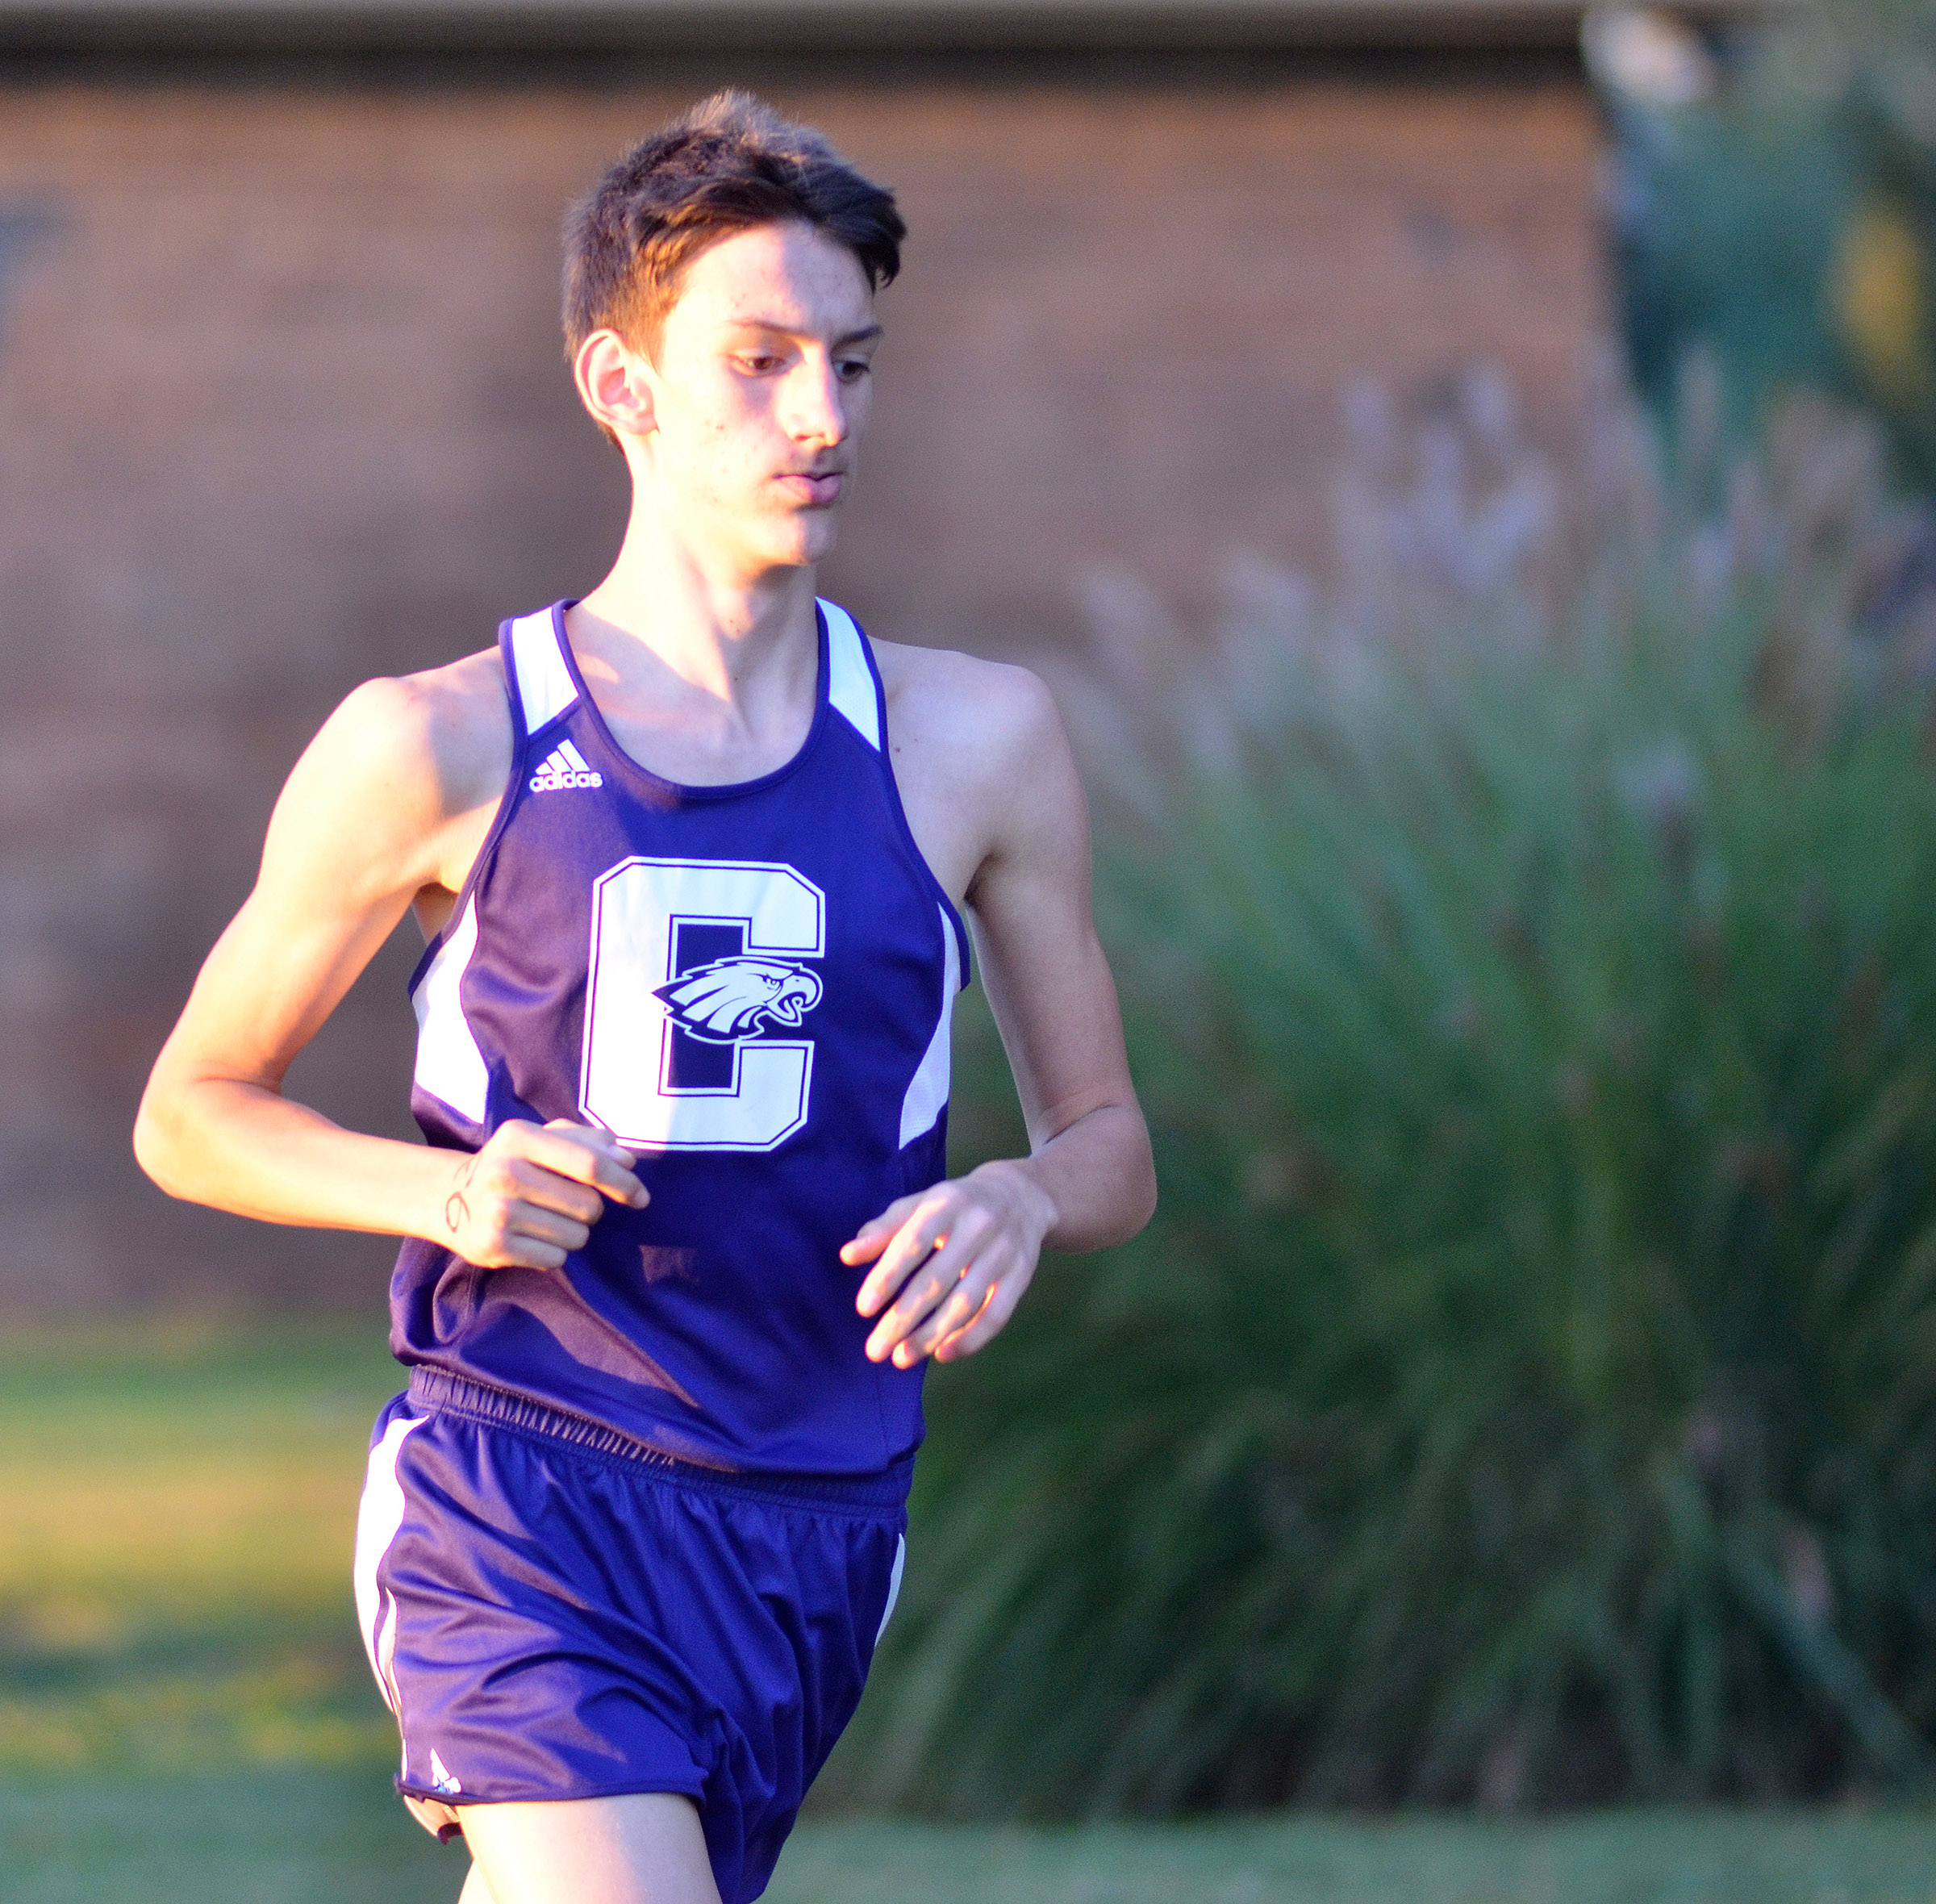 CHS junior Evan McAninch runs.